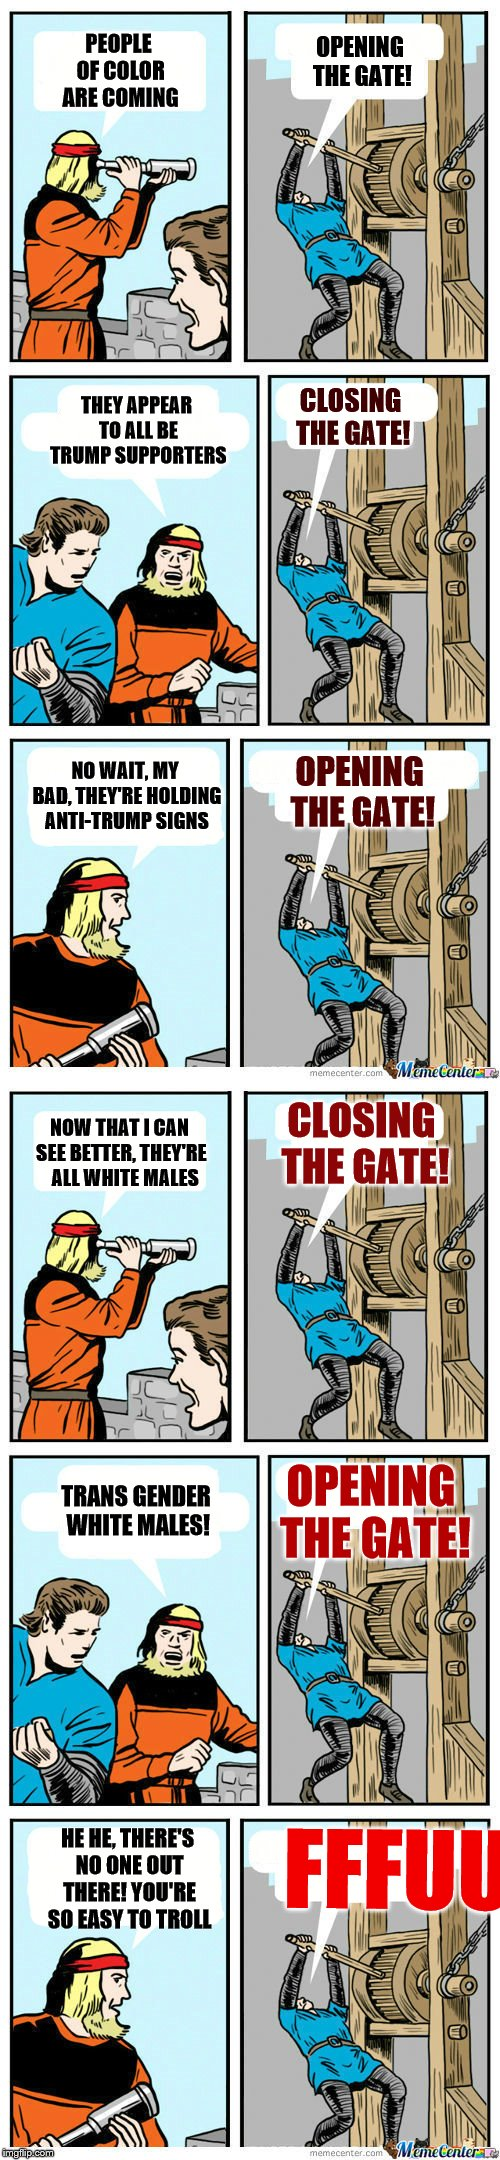 Trolling Liberals be like | PEOPLE OF COLOR ARE COMING OPENING THE GATE! THEY APPEAR TO ALL BE TRUMP SUPPORTERS CLOSING THE GATE! NO WAIT, MY BAD, THEY'RE HOLDING ANTI- | image tagged in open the gate a little,memes,liberals,trolling,leftists | made w/ Imgflip meme maker